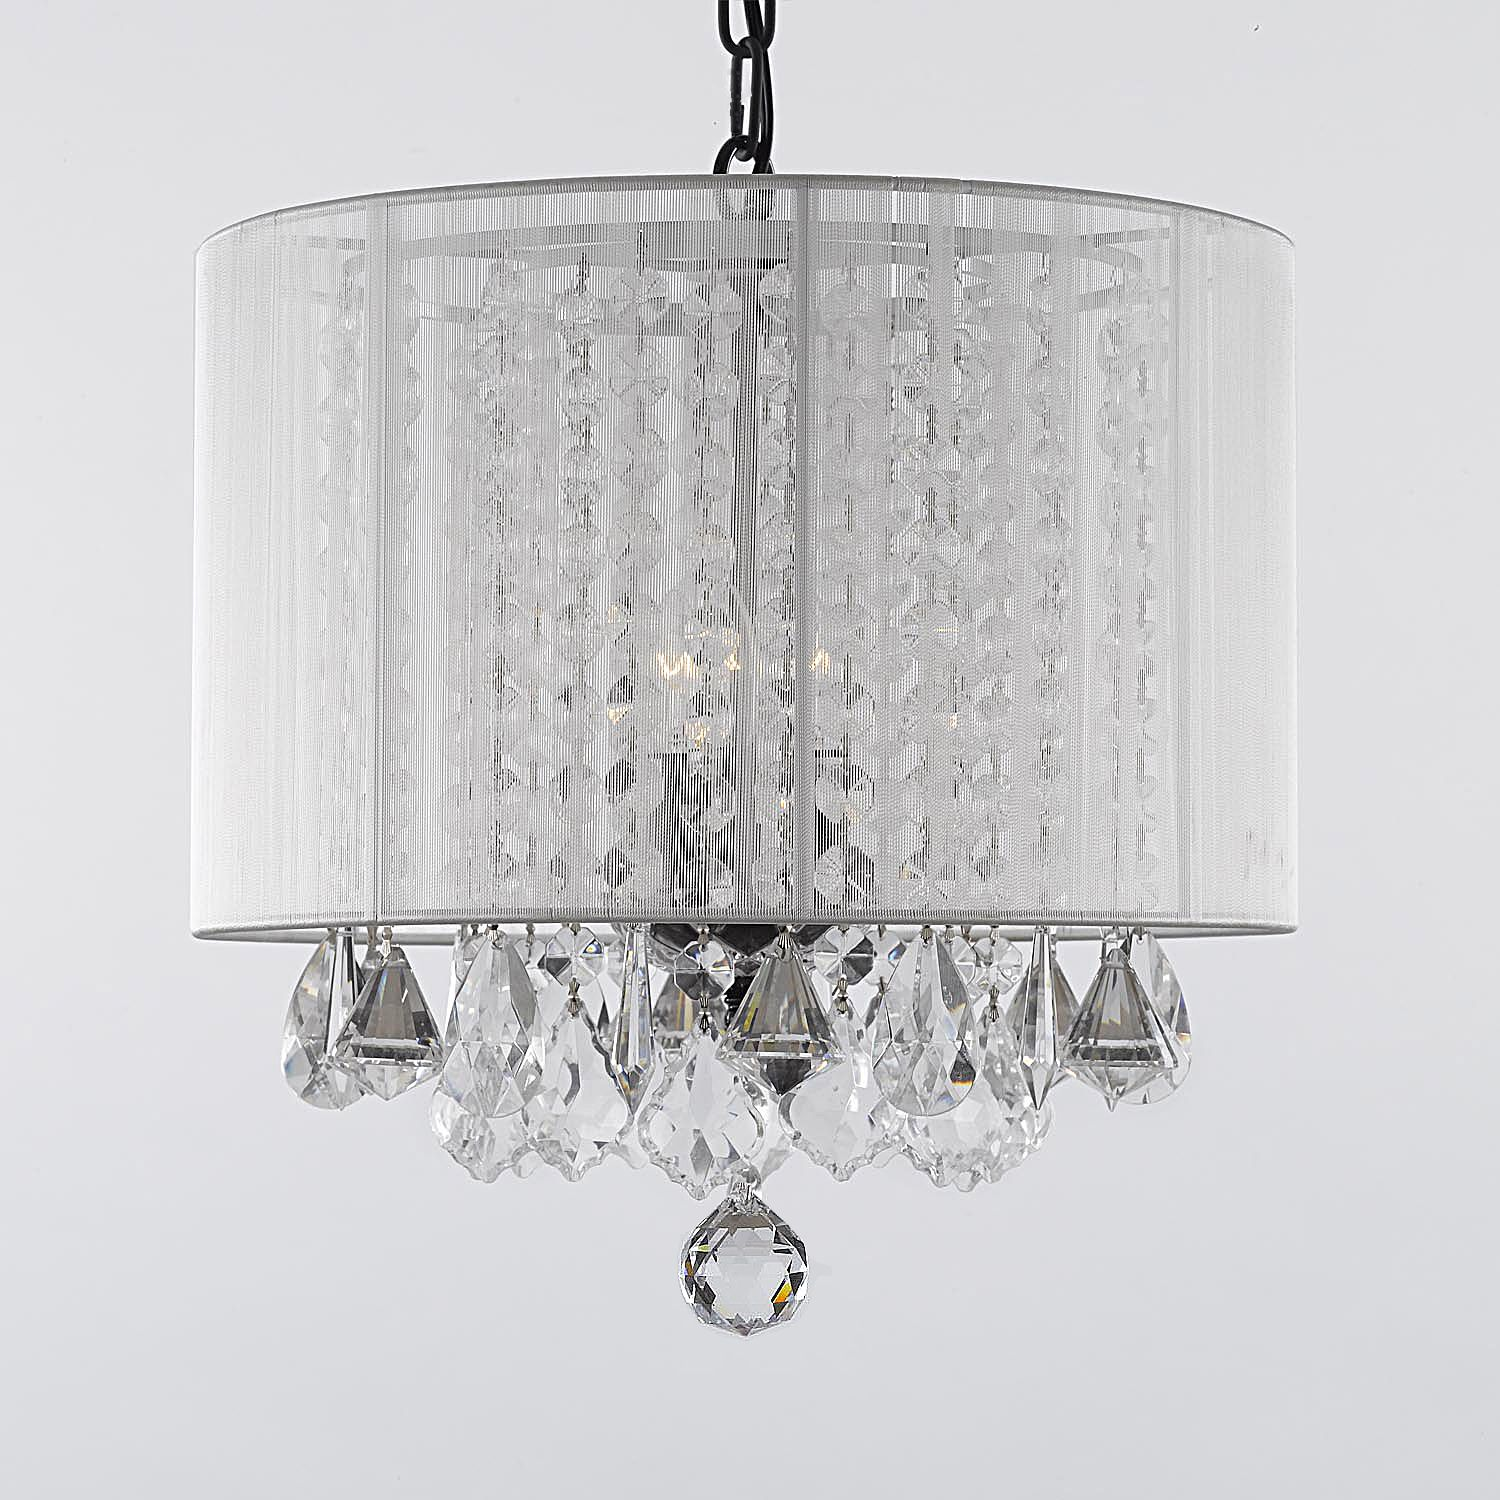 G7 whitesm6043 gallery chandeliers with shades crystal chandelier gallery crystal chandelier with shade by gallery chandeliers on wrought iron frame crystal accent hardwired professional installation recommended arubaitofo Images